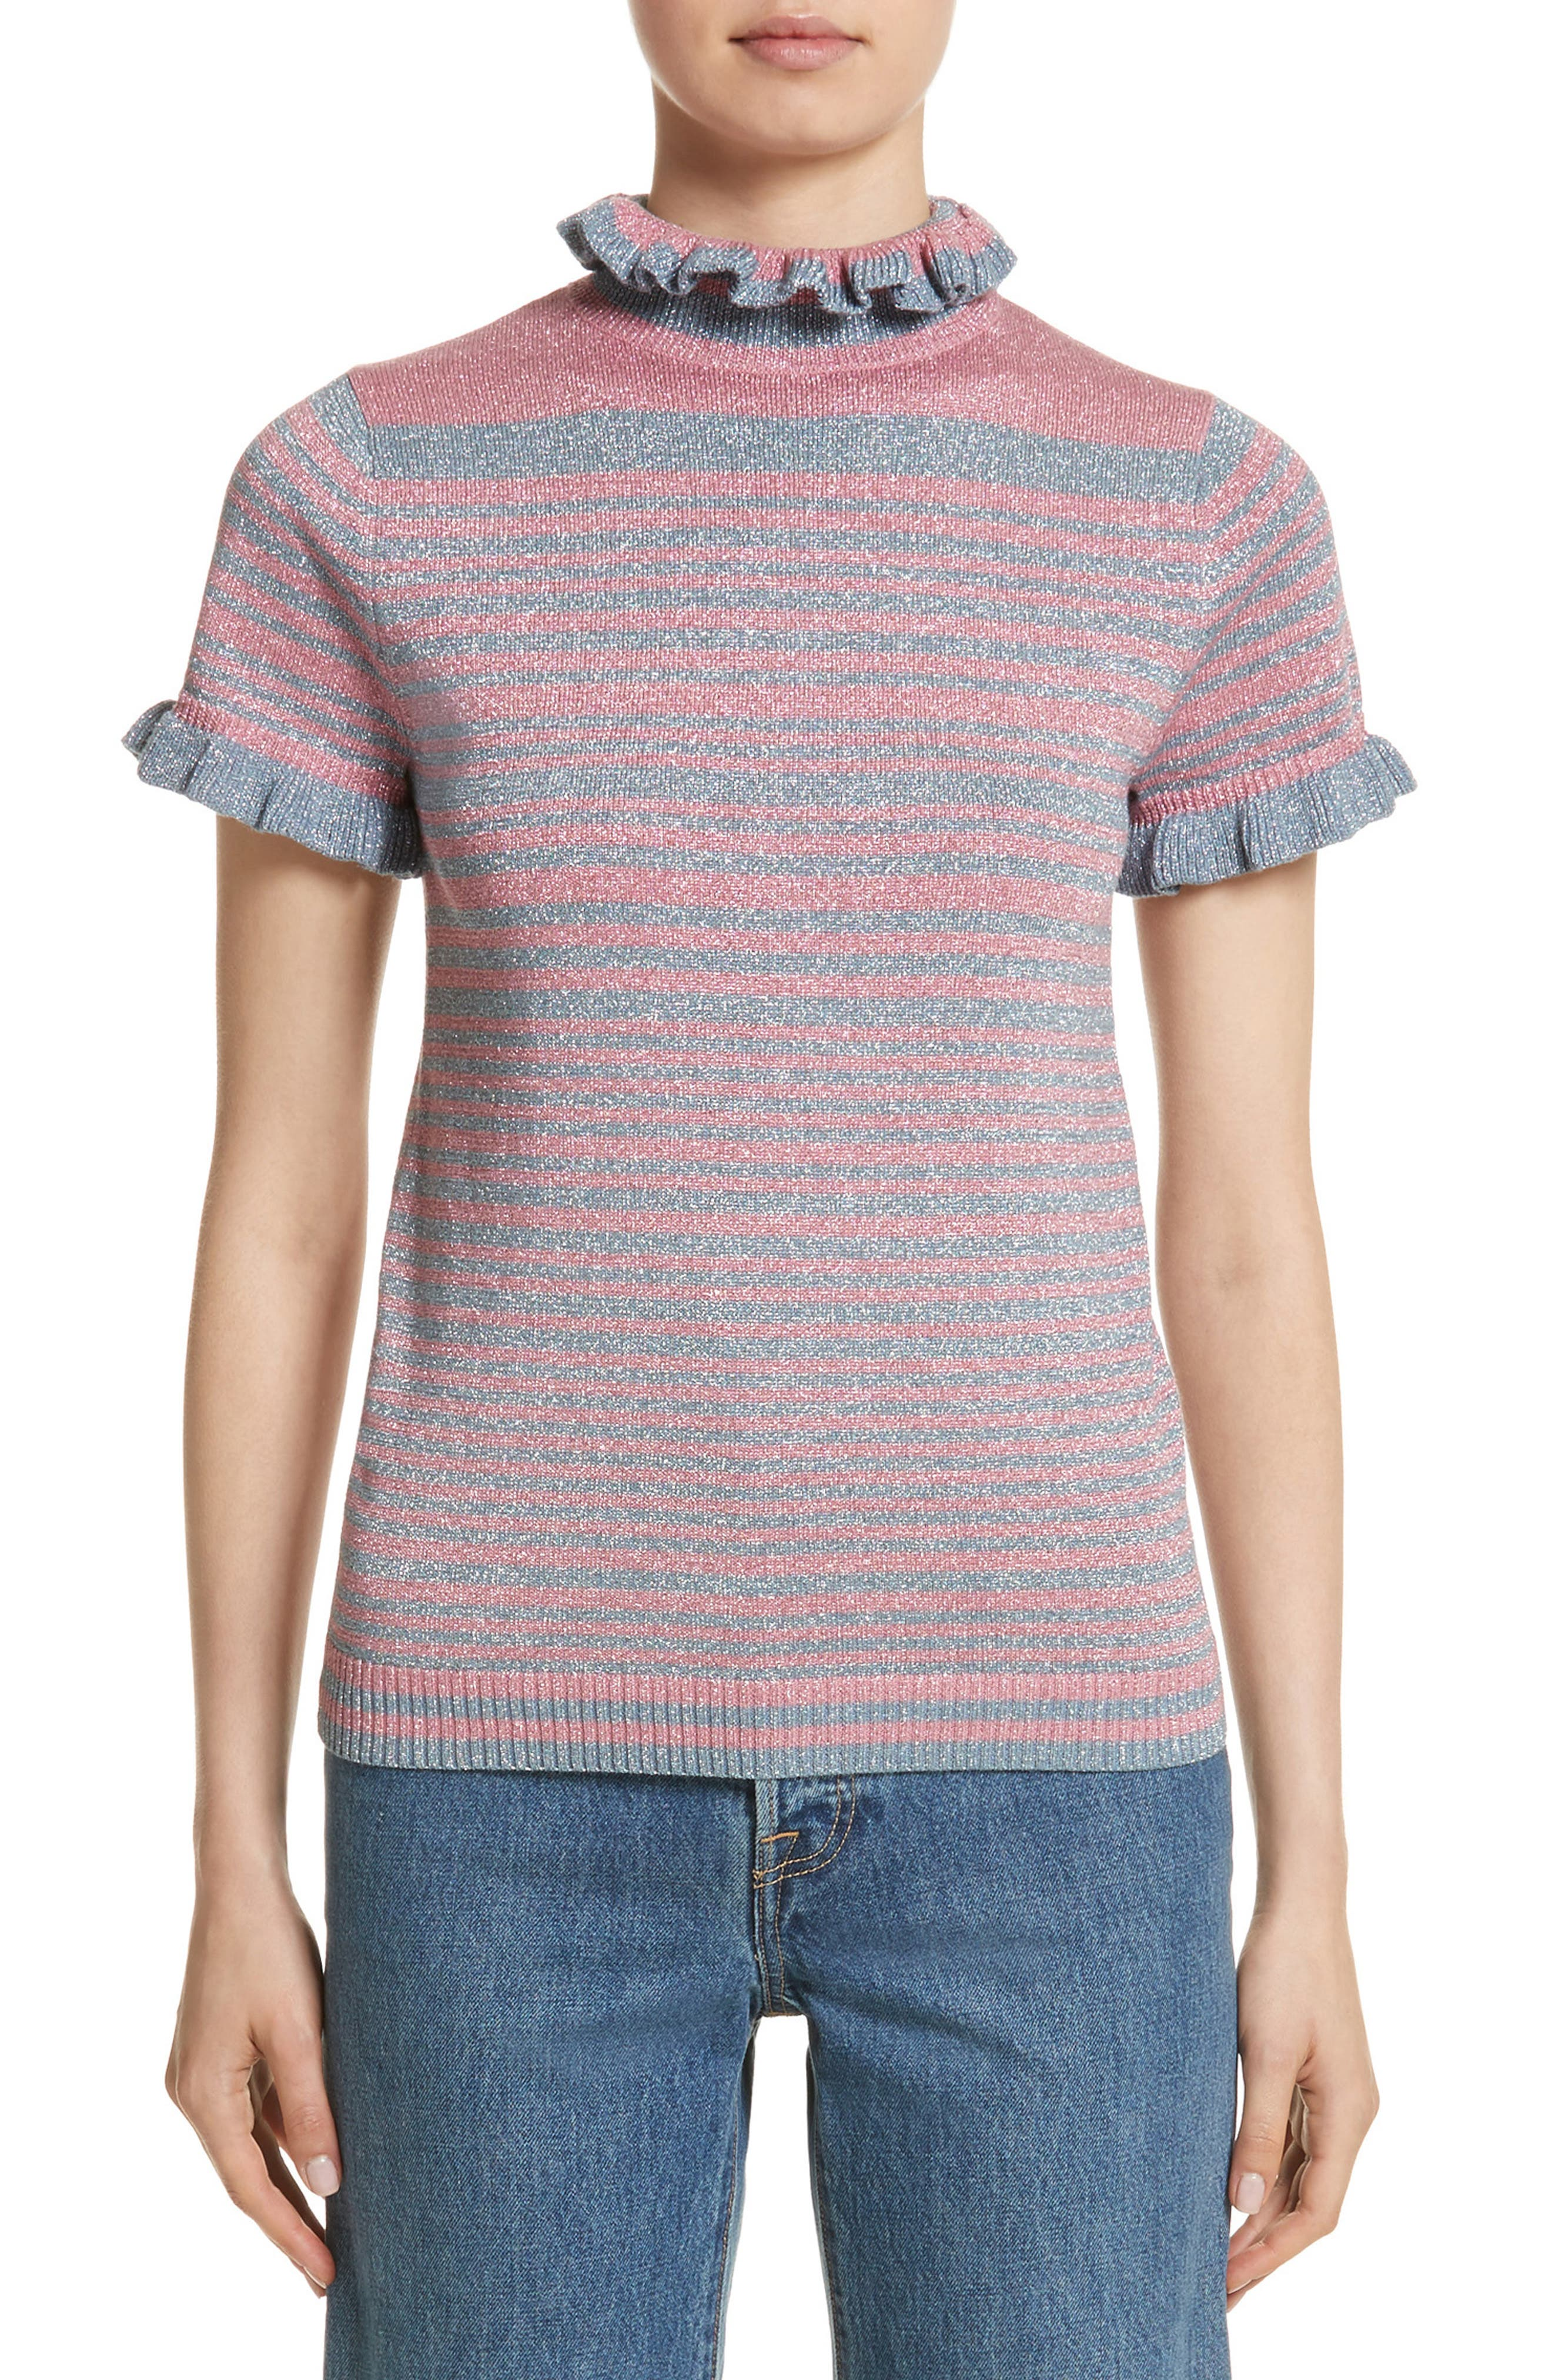 Joan Metallic Stripe Short Sleeve Sweater,                         Main,                         color, 400